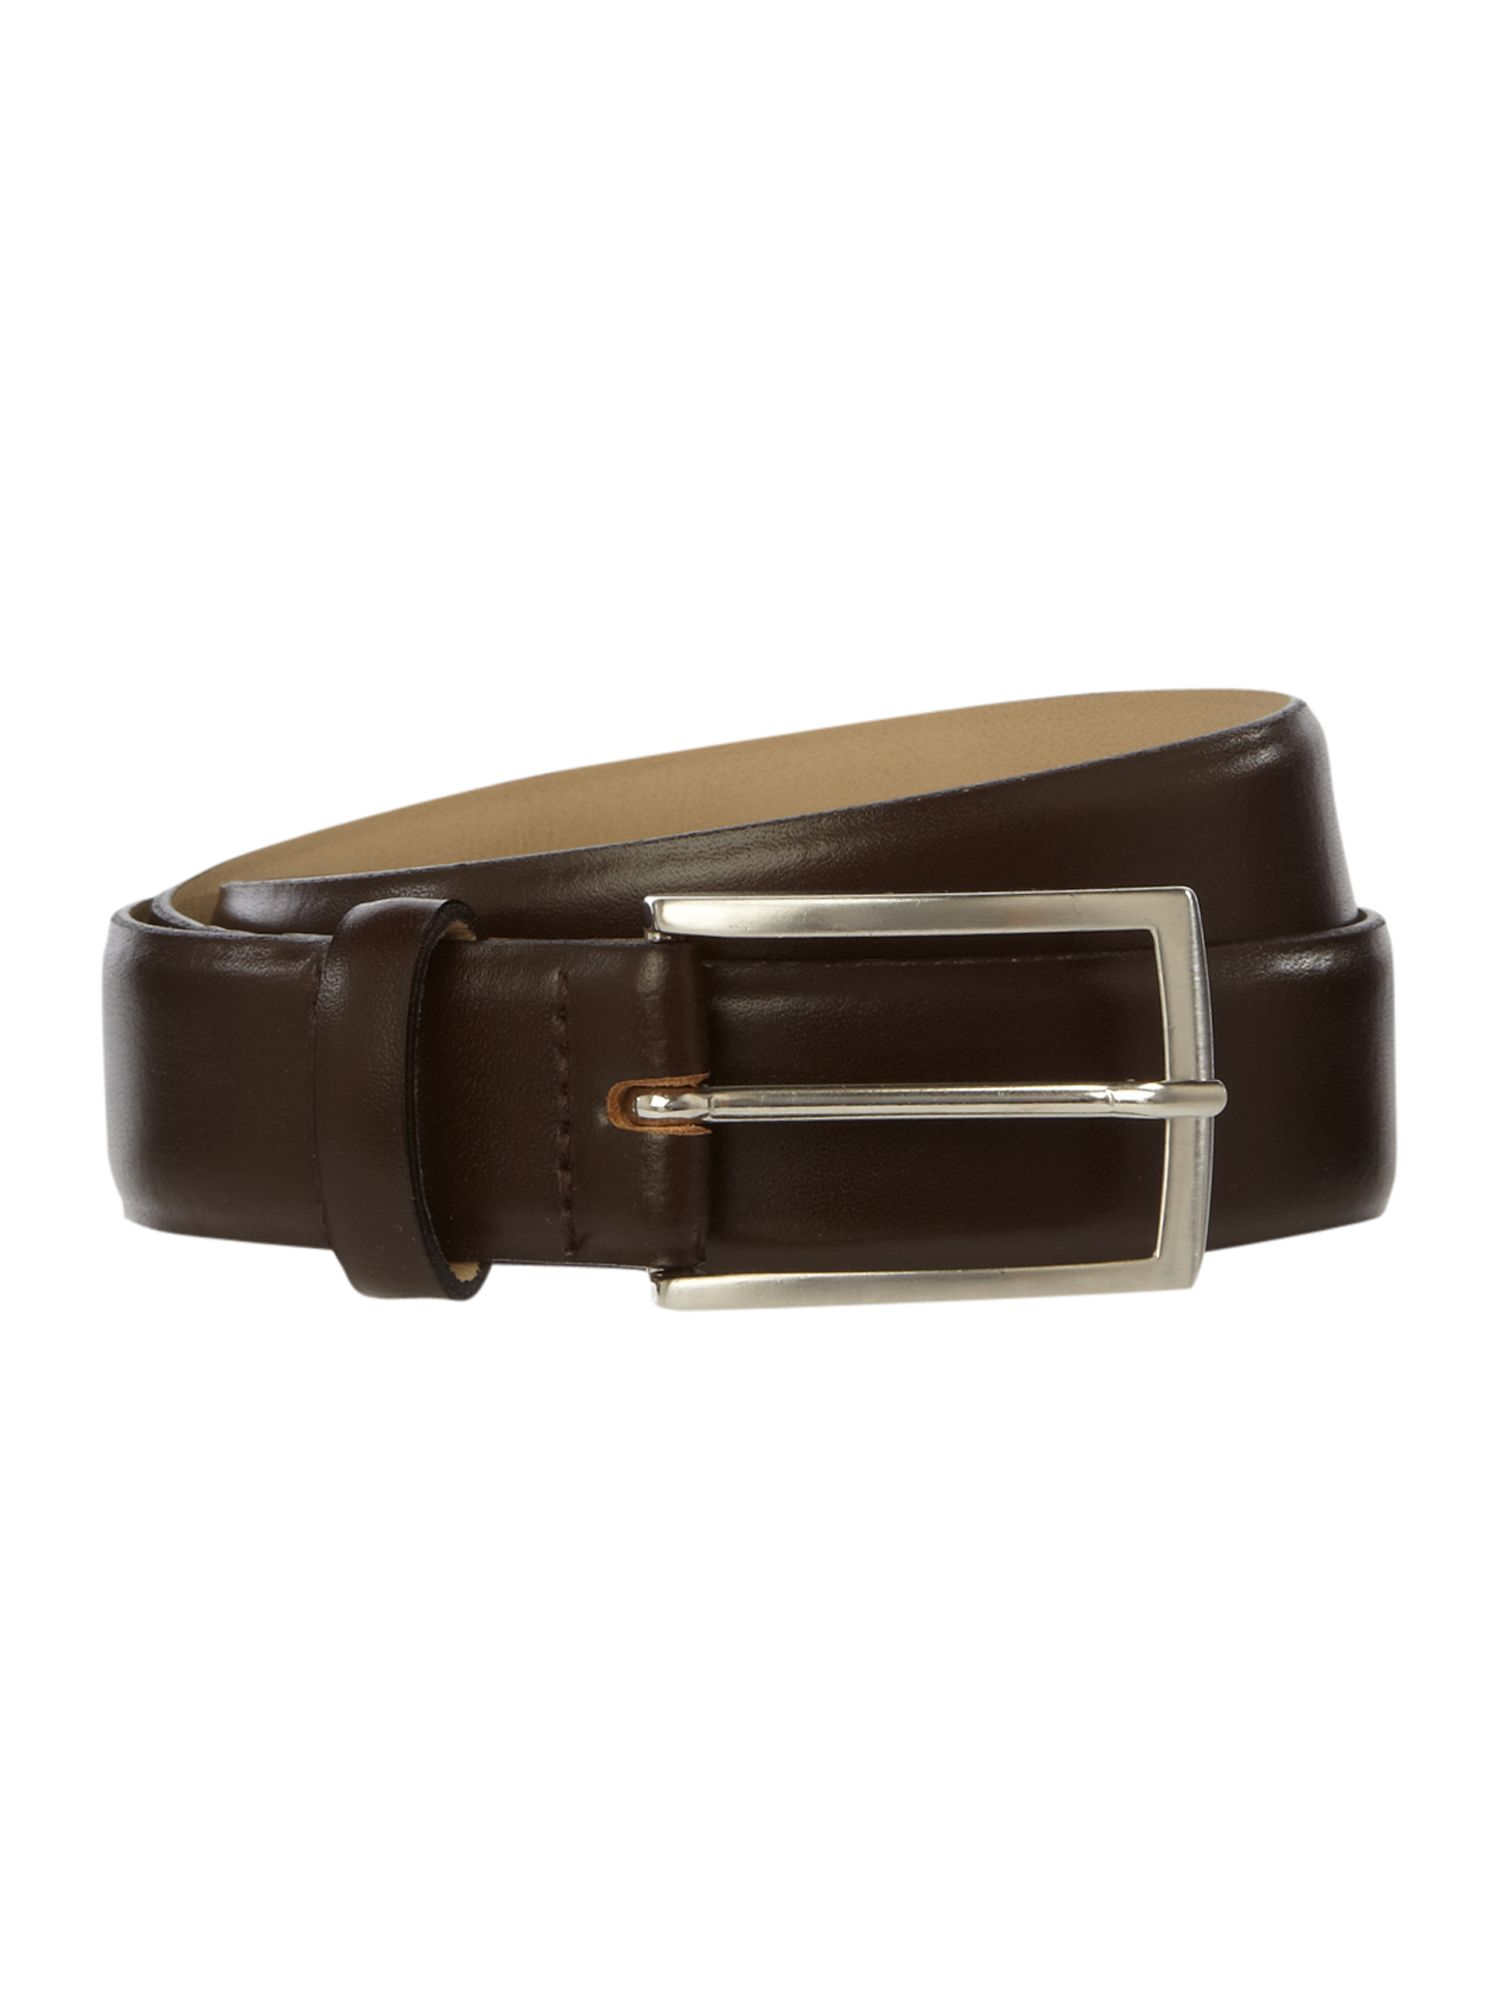 Plain Bevelled Edge Nubuck Belt